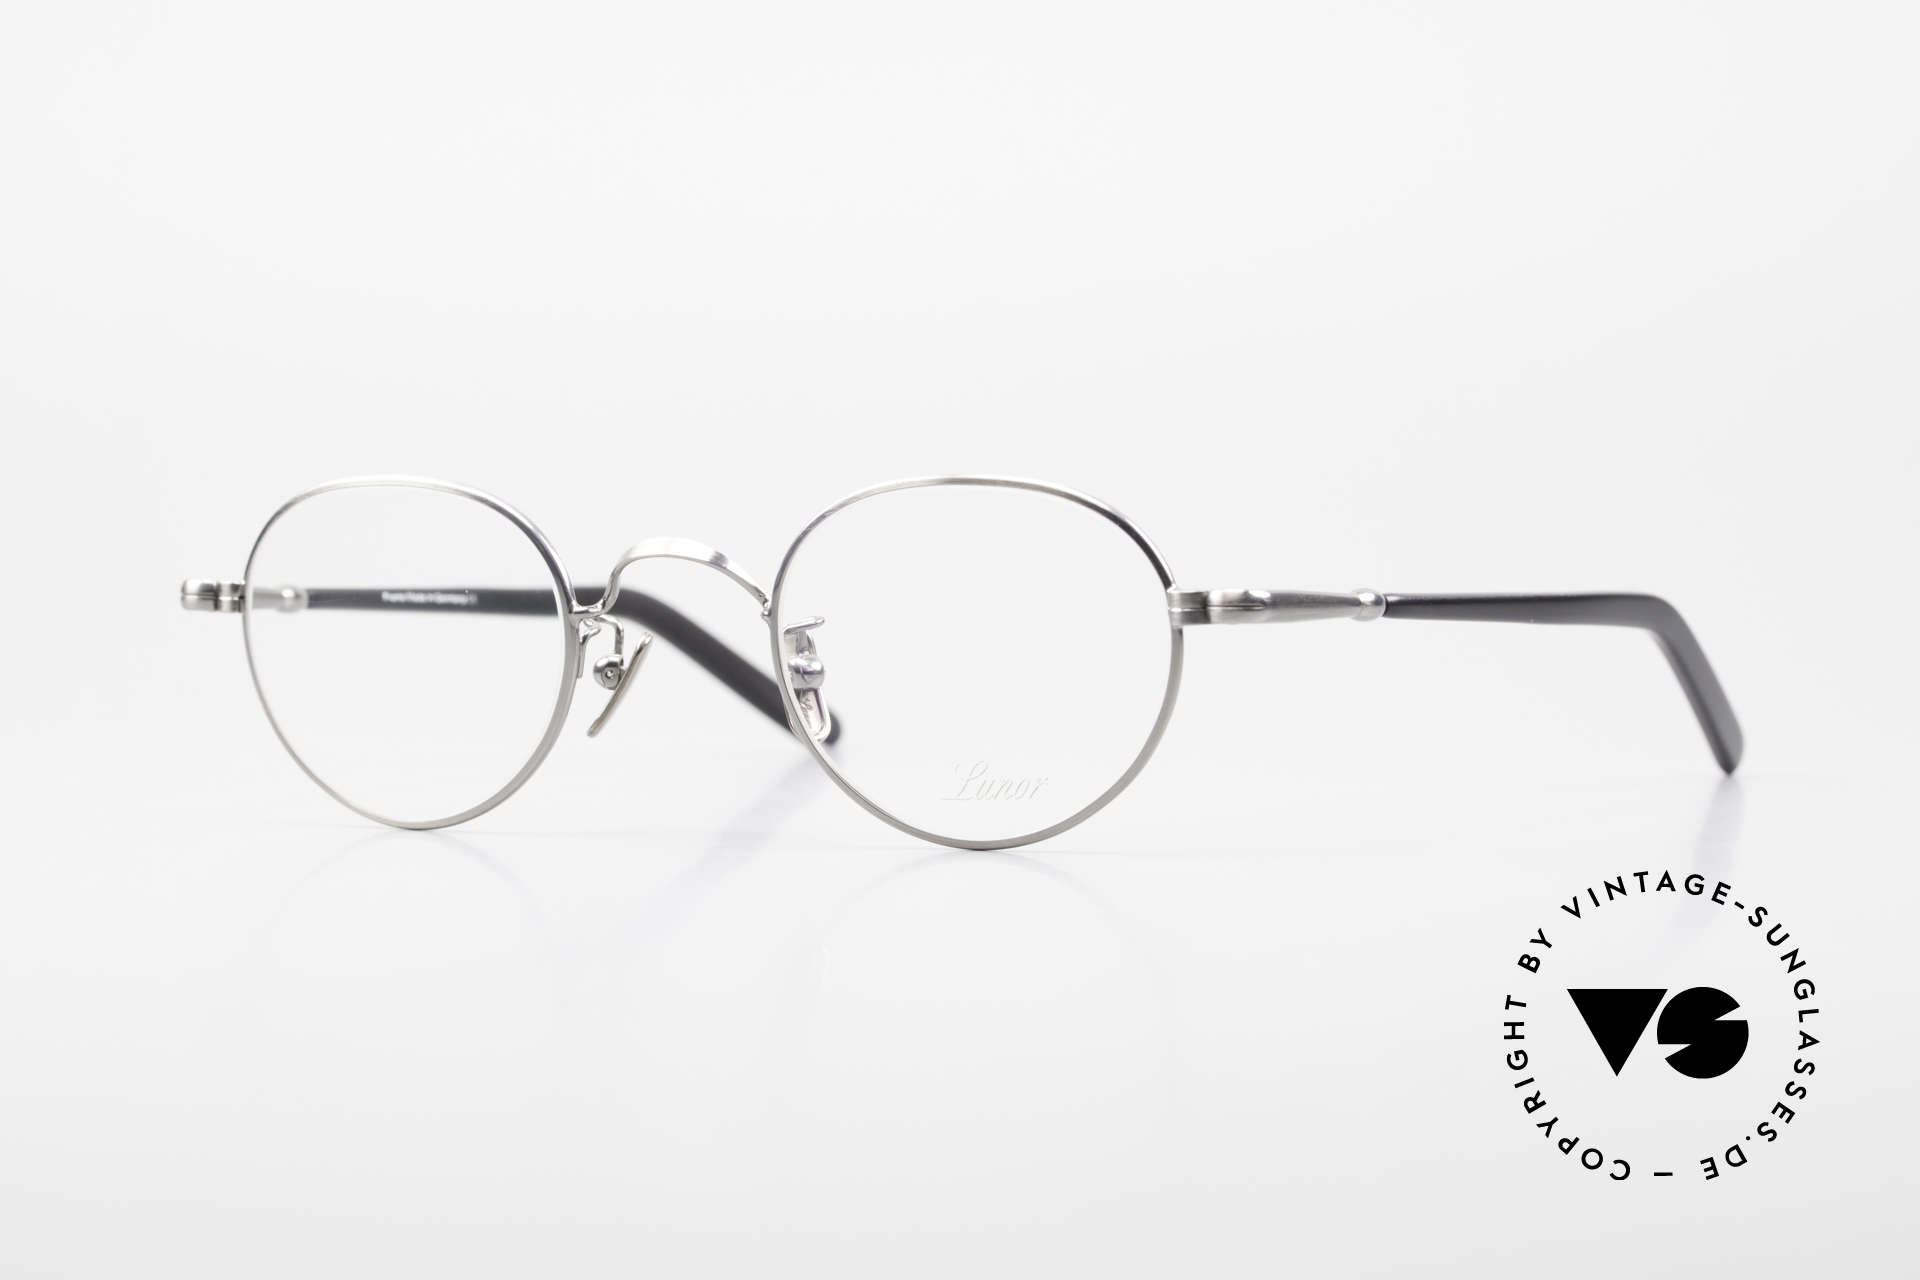 Lunor VA 107 Panto Style Antique Silver AS, old Lunor eyeglasses, size 43/24, AS: ANTIQUE SILVER, Made for Men and Women